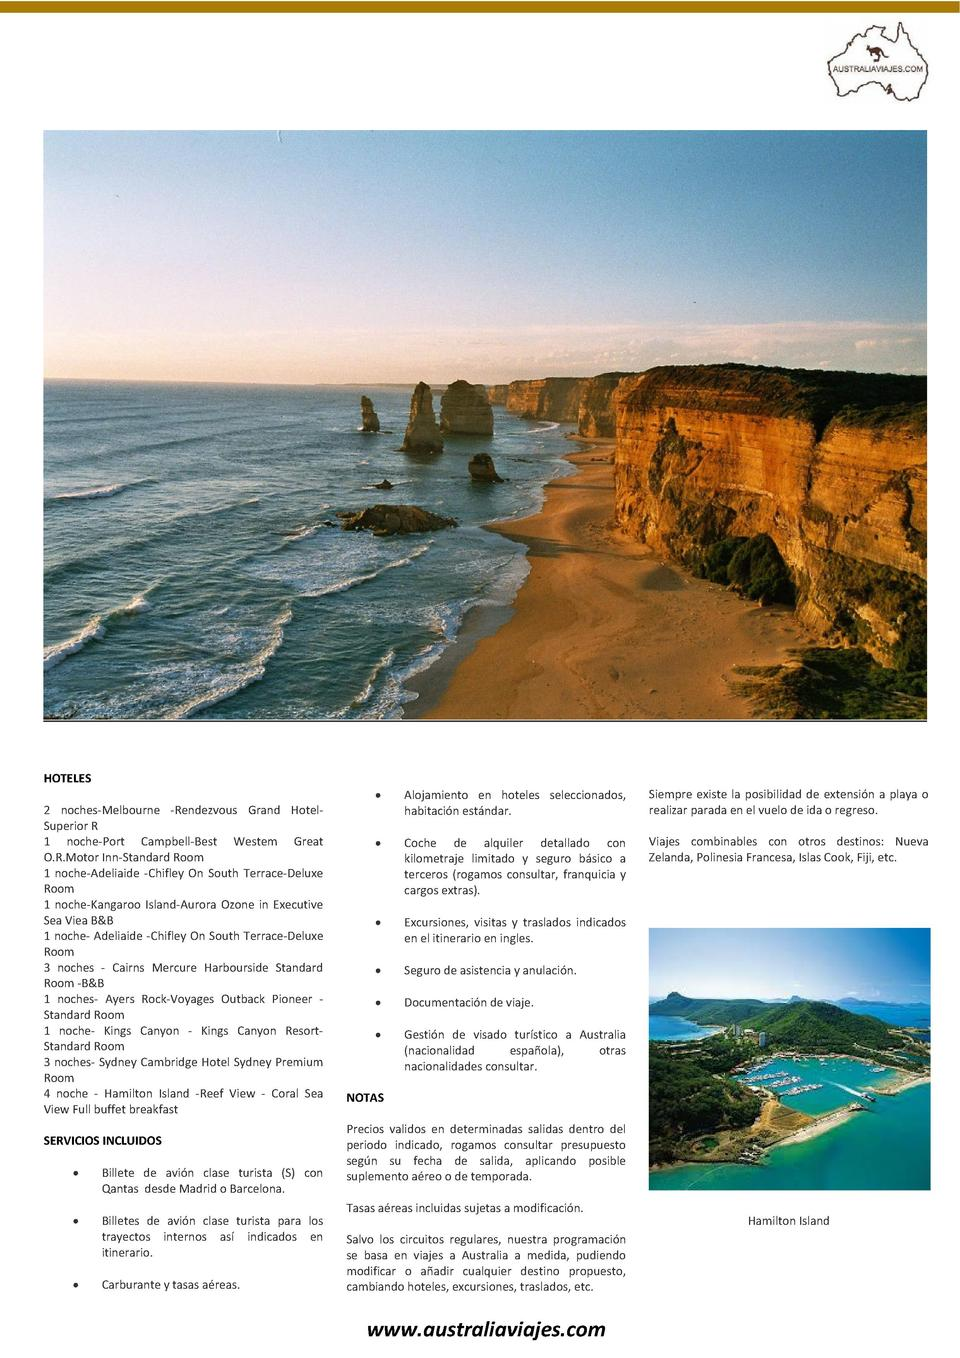 HOTELES     2 noches-Melbourne -Rendezvous Grand HotelSuperior R 1 noche-Port Campbell-Best Westem Great O.R.Motor Inn-Sta...